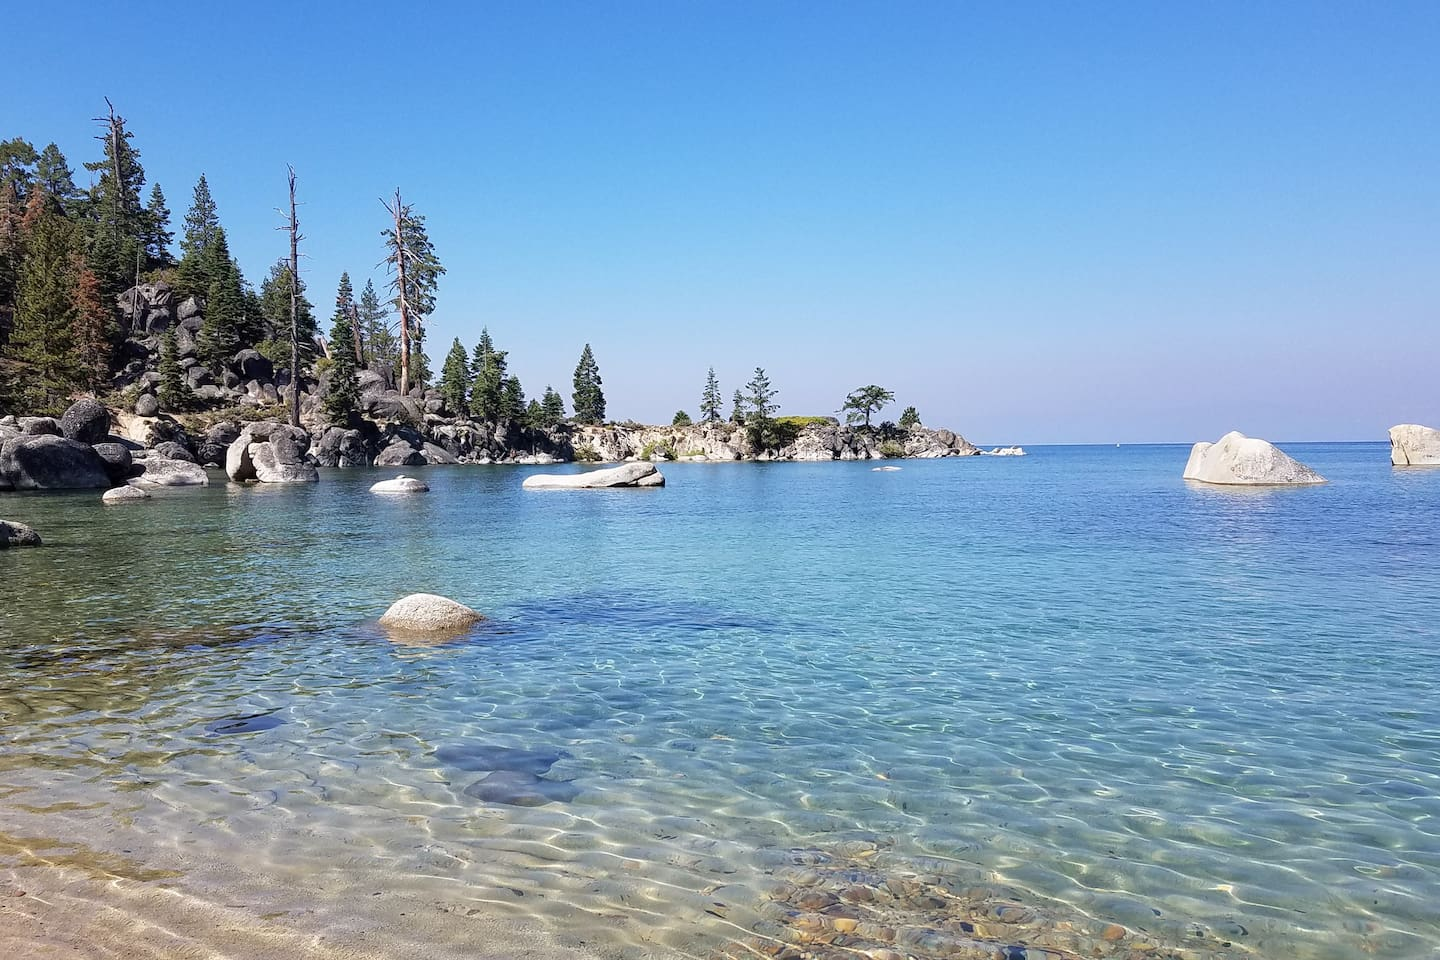 Spring and Summer in North Lake Tahoe are the incredible! Hike to Whale Beach / Secret Cove (nude) Beach